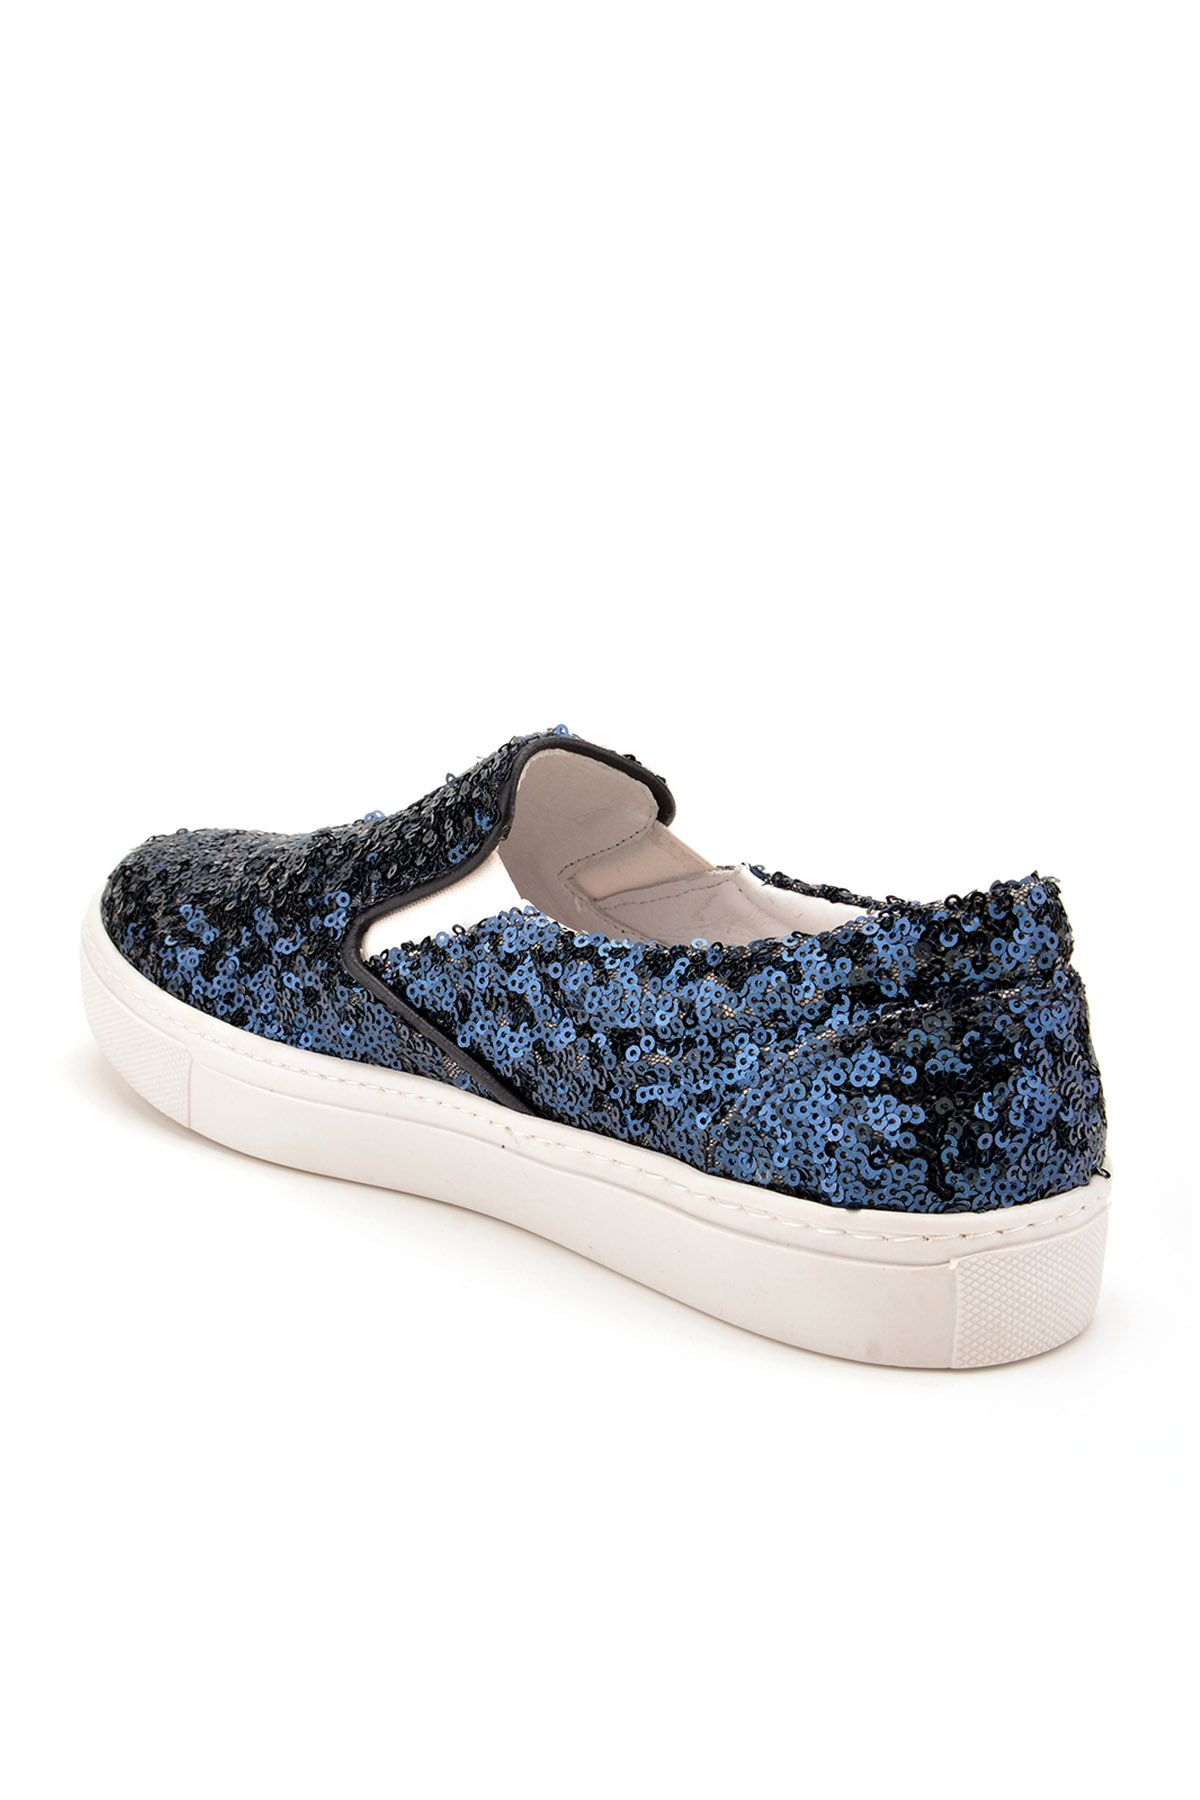 Pegia Sucre Sneakers From Genuine Leather Covered With Sequins REC-012 Navy blue